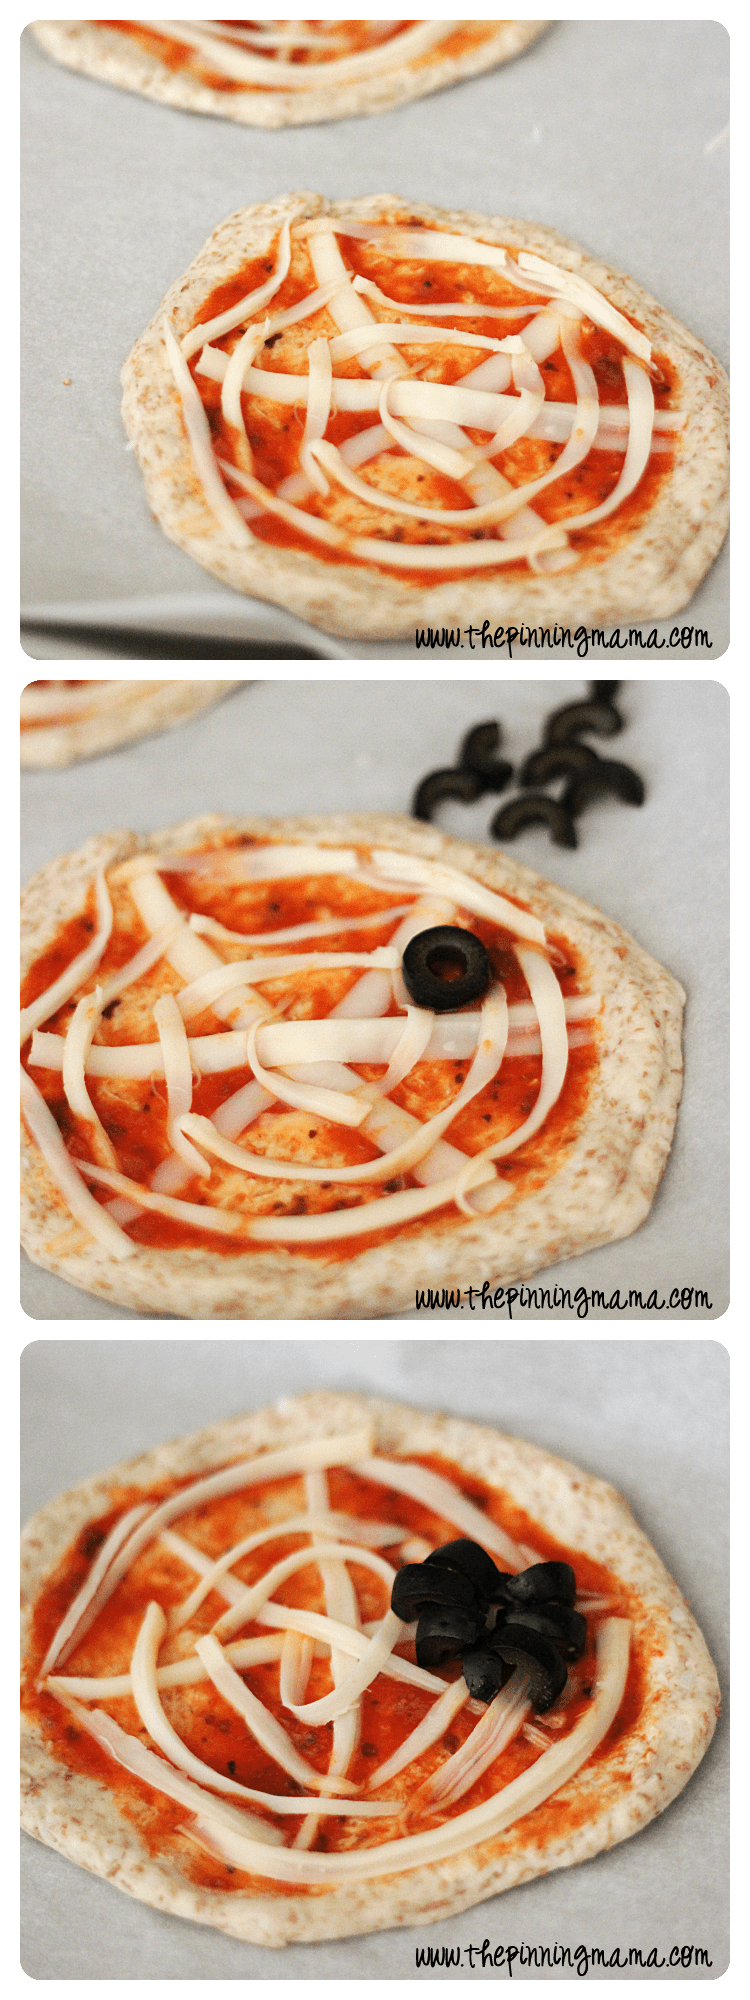 Easy Weeknight Dinner: Pillsbury Spider Shaped Pizza by www.thepinningmama.com